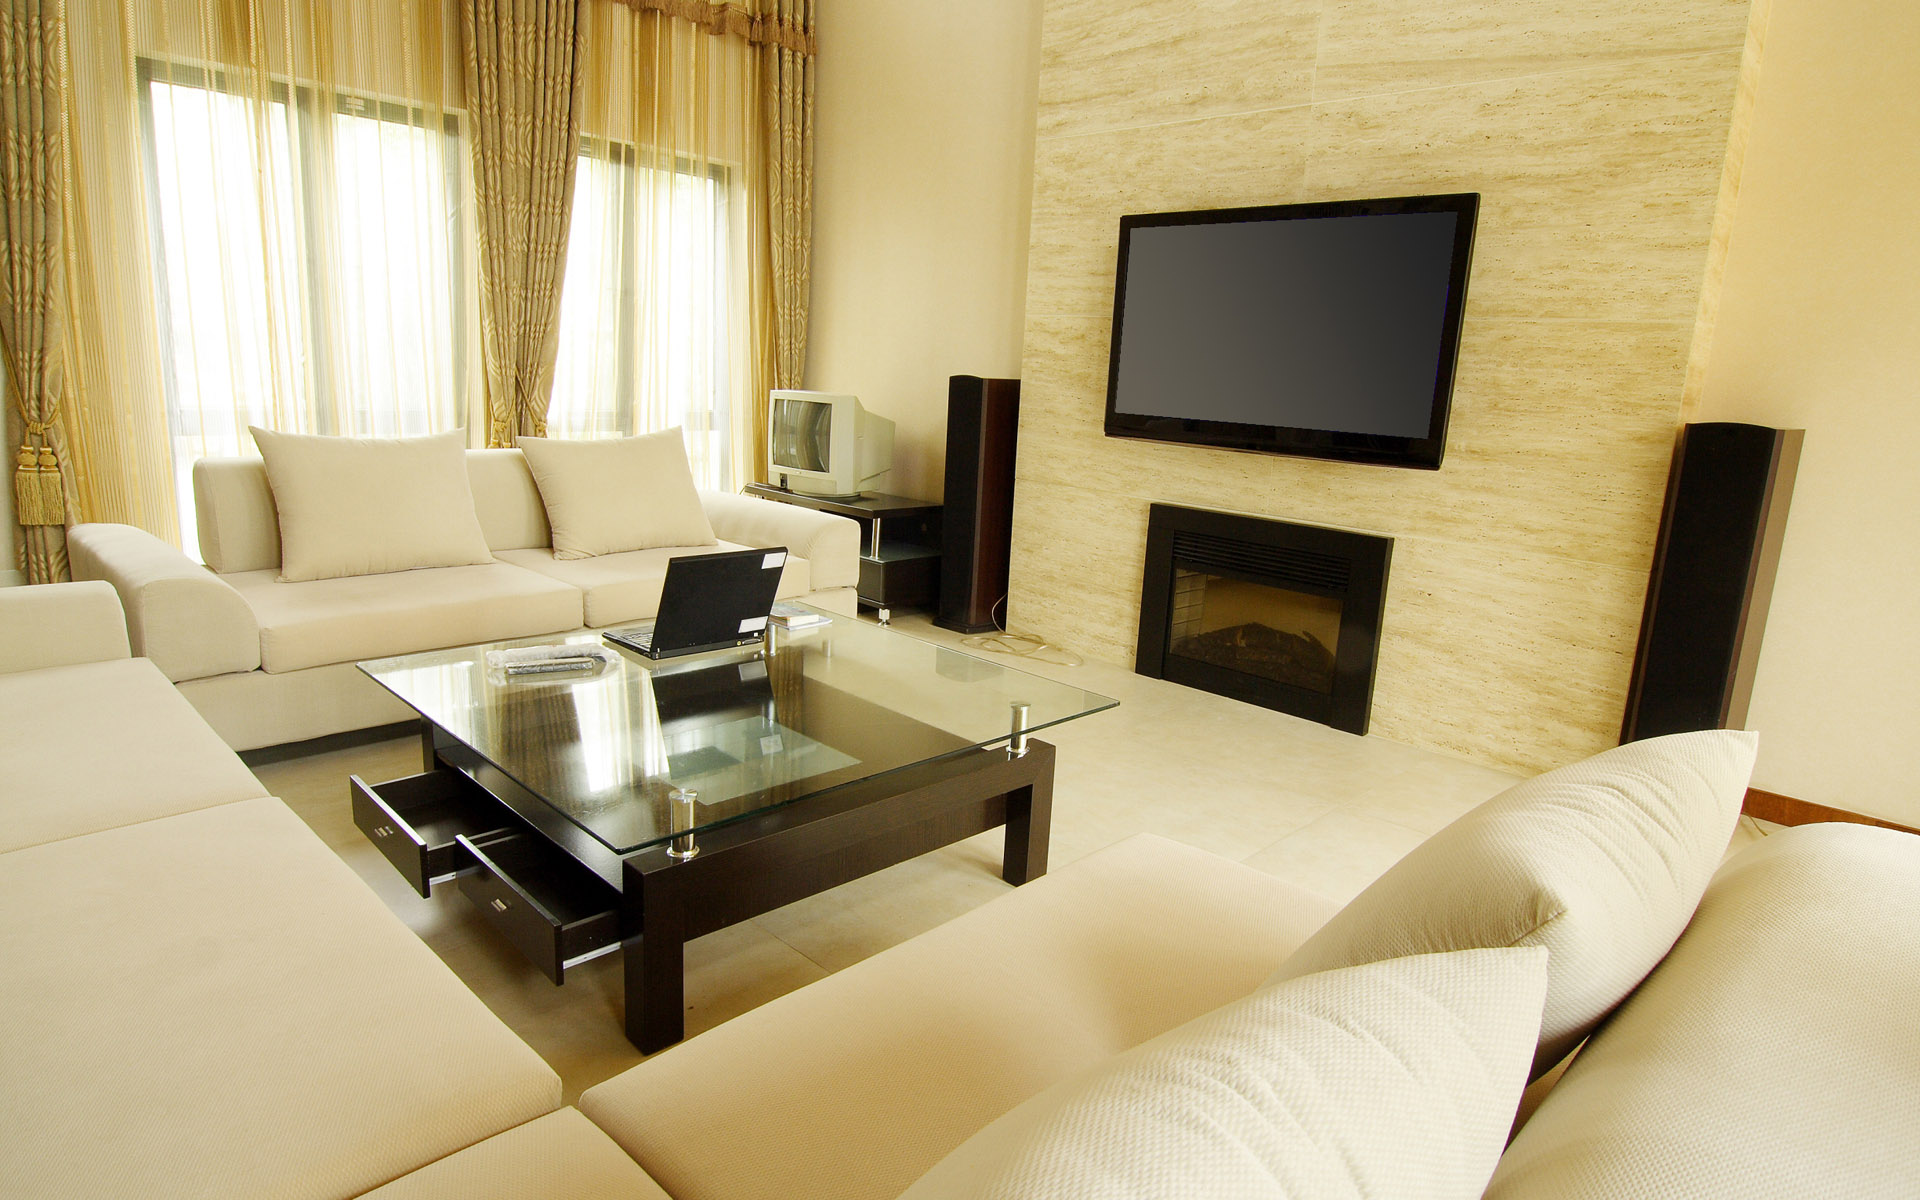 Living-Room-Wallpapers-02